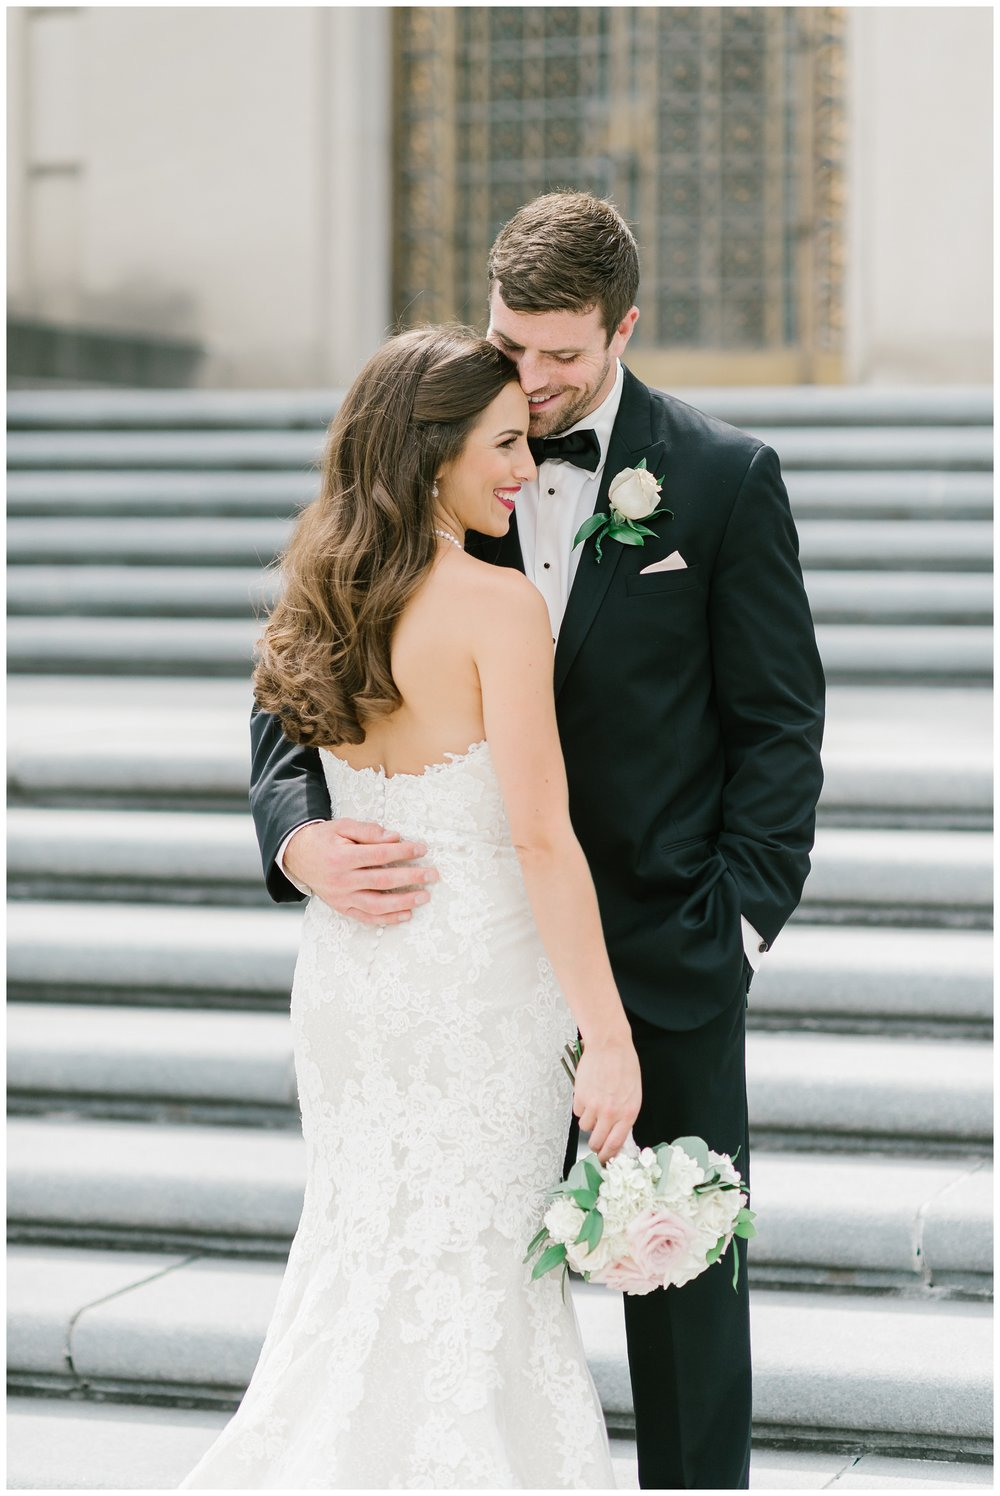 Rebecca_Bridges_Photography_Indianapolis_Wedding_Photographer_6824.jpg